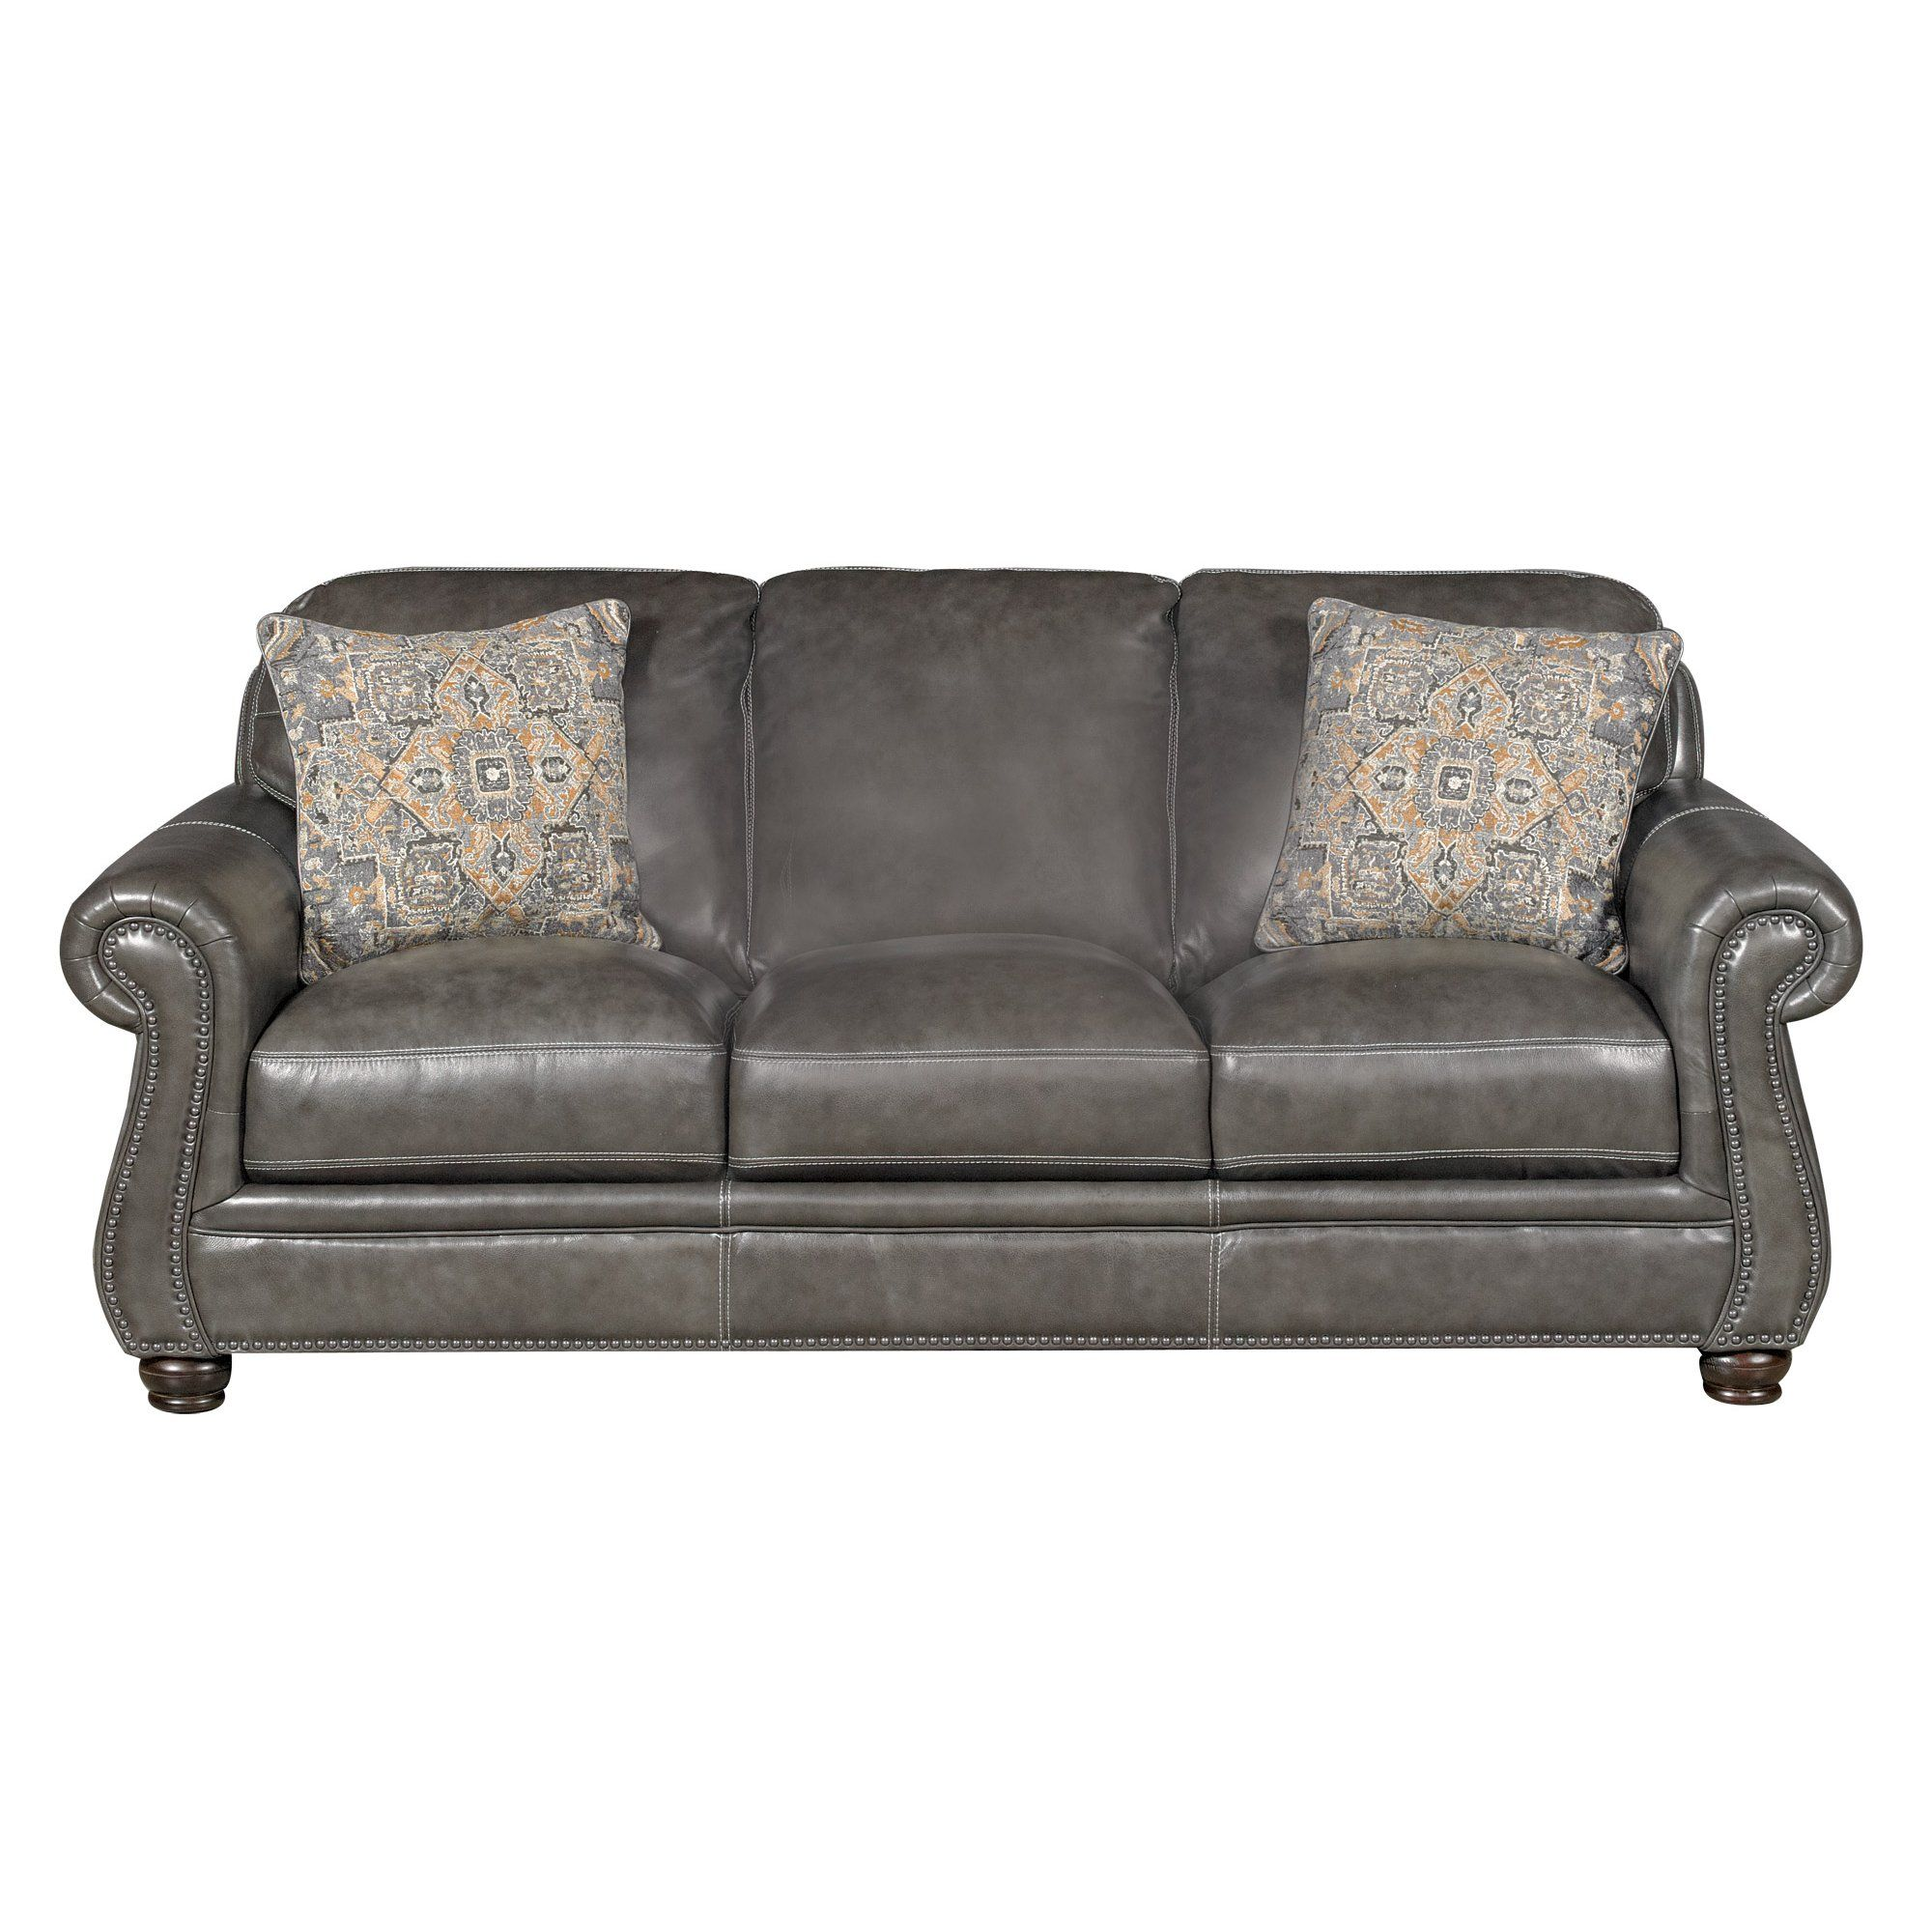 Charcoal Gray Leather Sofa Charcoal Gray Leather Match